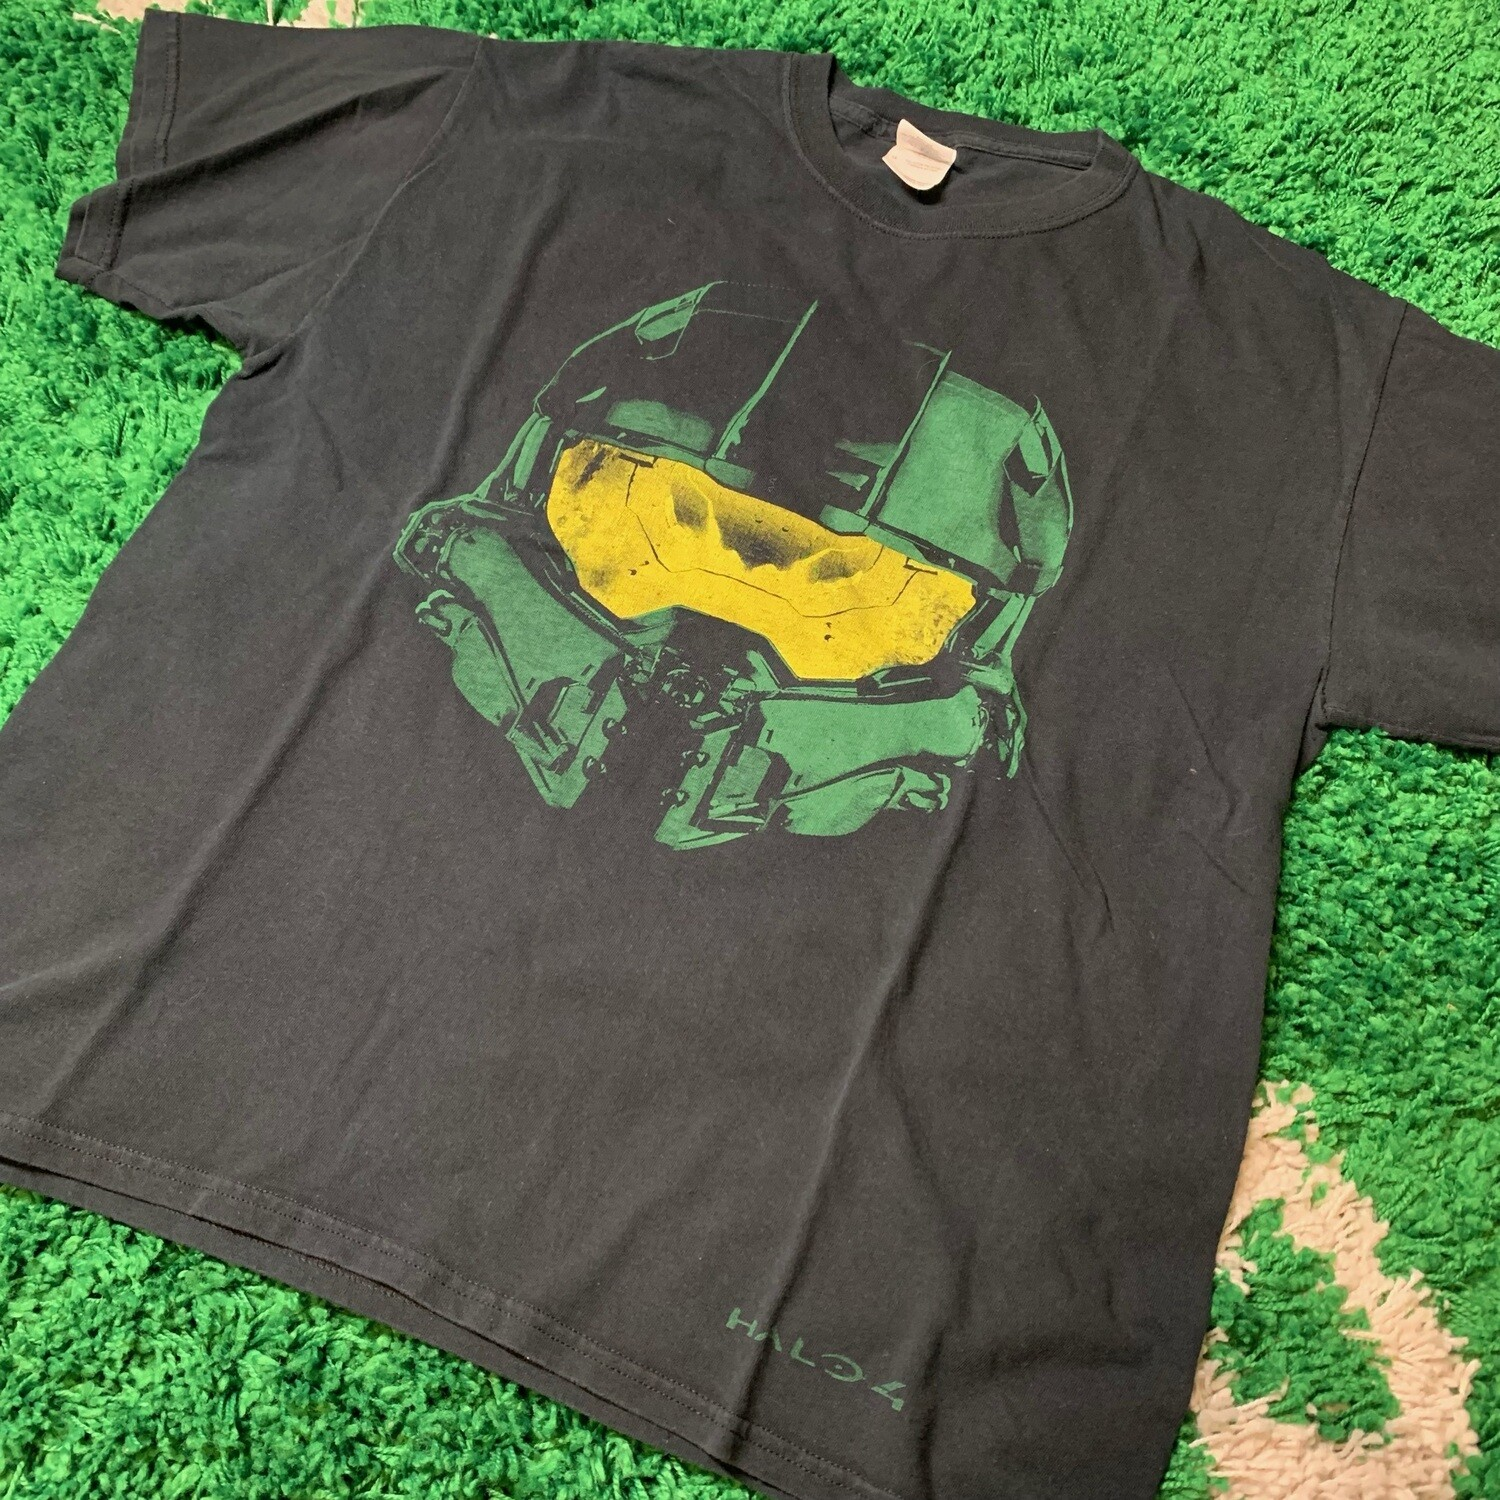 Halo 4 Master Chief Tee Size Large